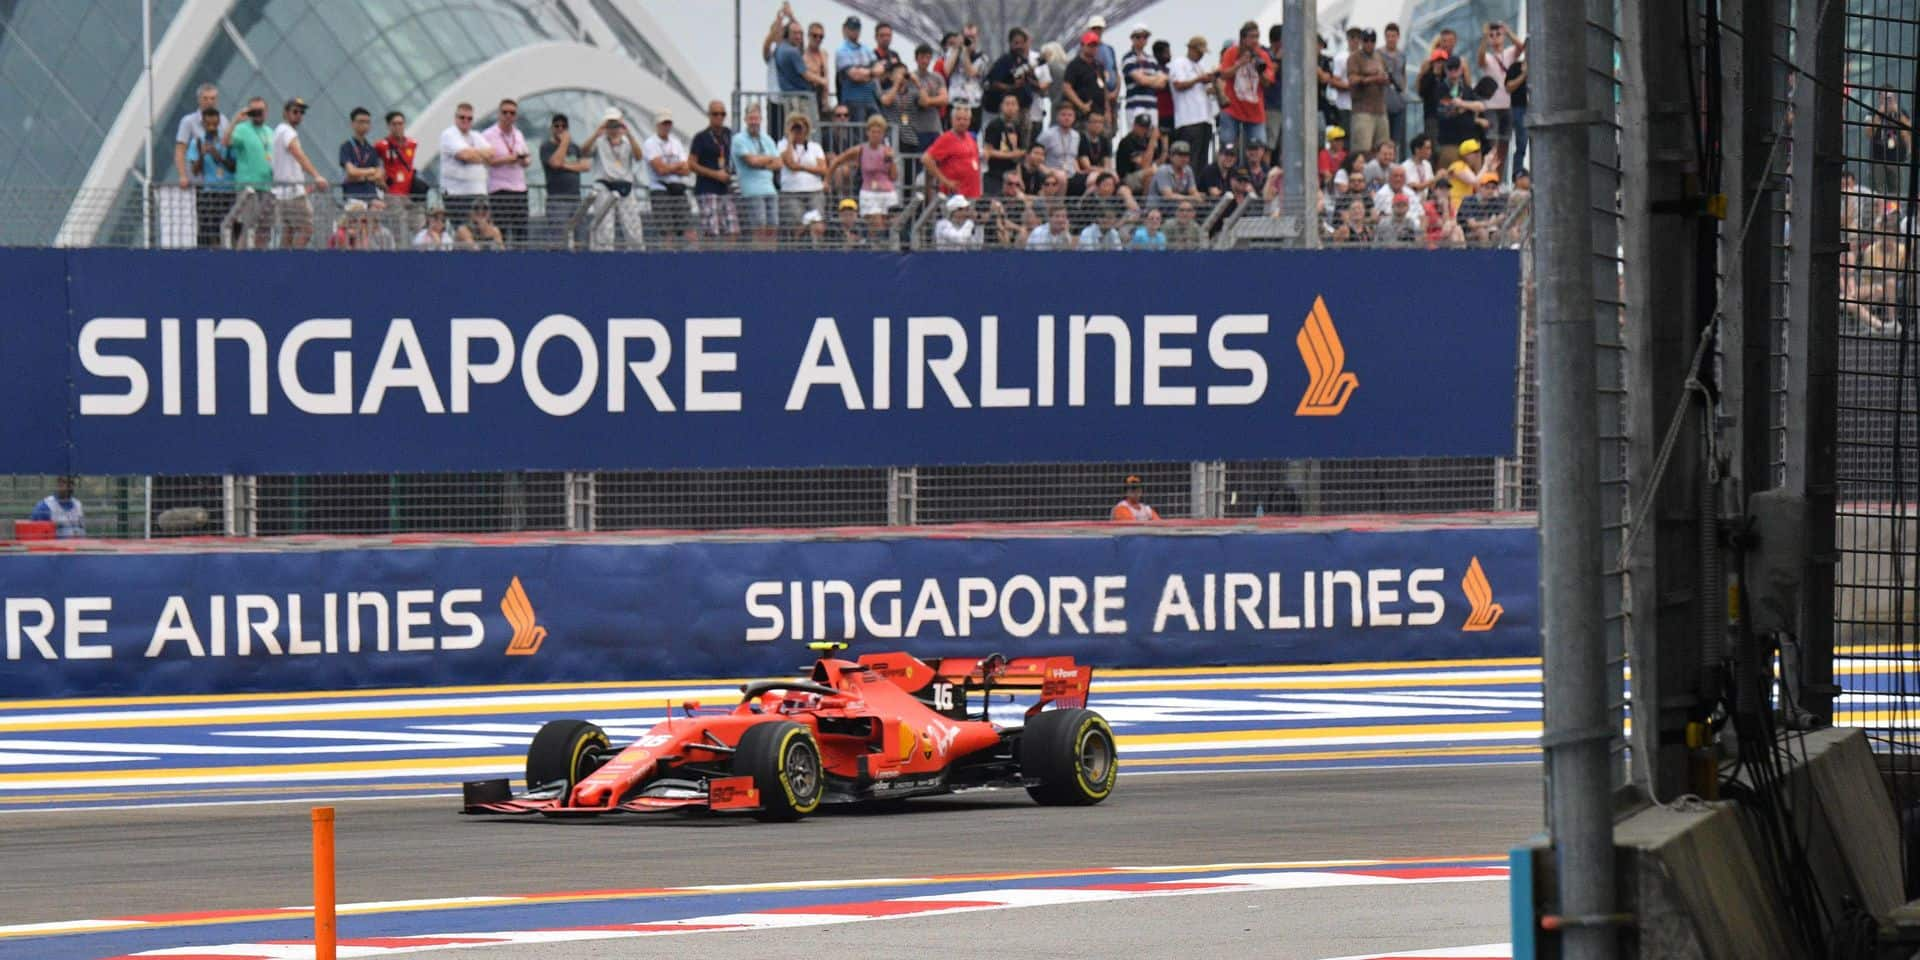 Ferrari's Monegasque driver Charles Leclerc takes part in the first practice session for the Formula One Singapore Grand Prix at the Marina Bay Street Circuit in Singapore on September 20, 2019. (Photo by Mladen ANTONOV / AFP)